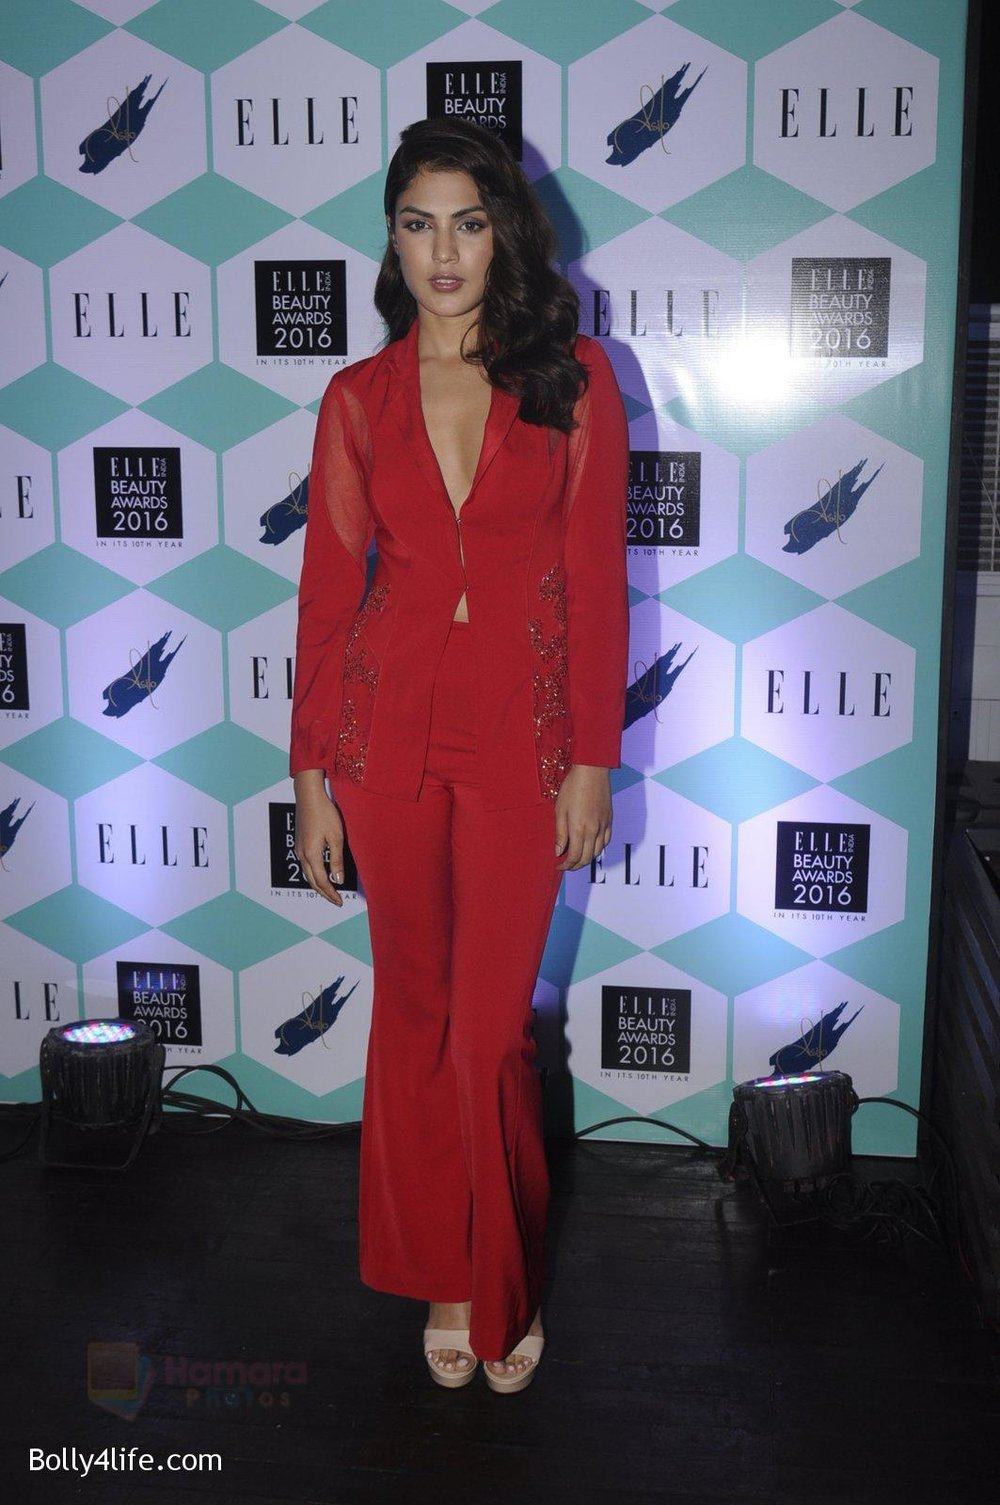 Rhea-Chakraborty-at-Elle-Beauty-Awards-on-5th-Oct-2016-44.jpg